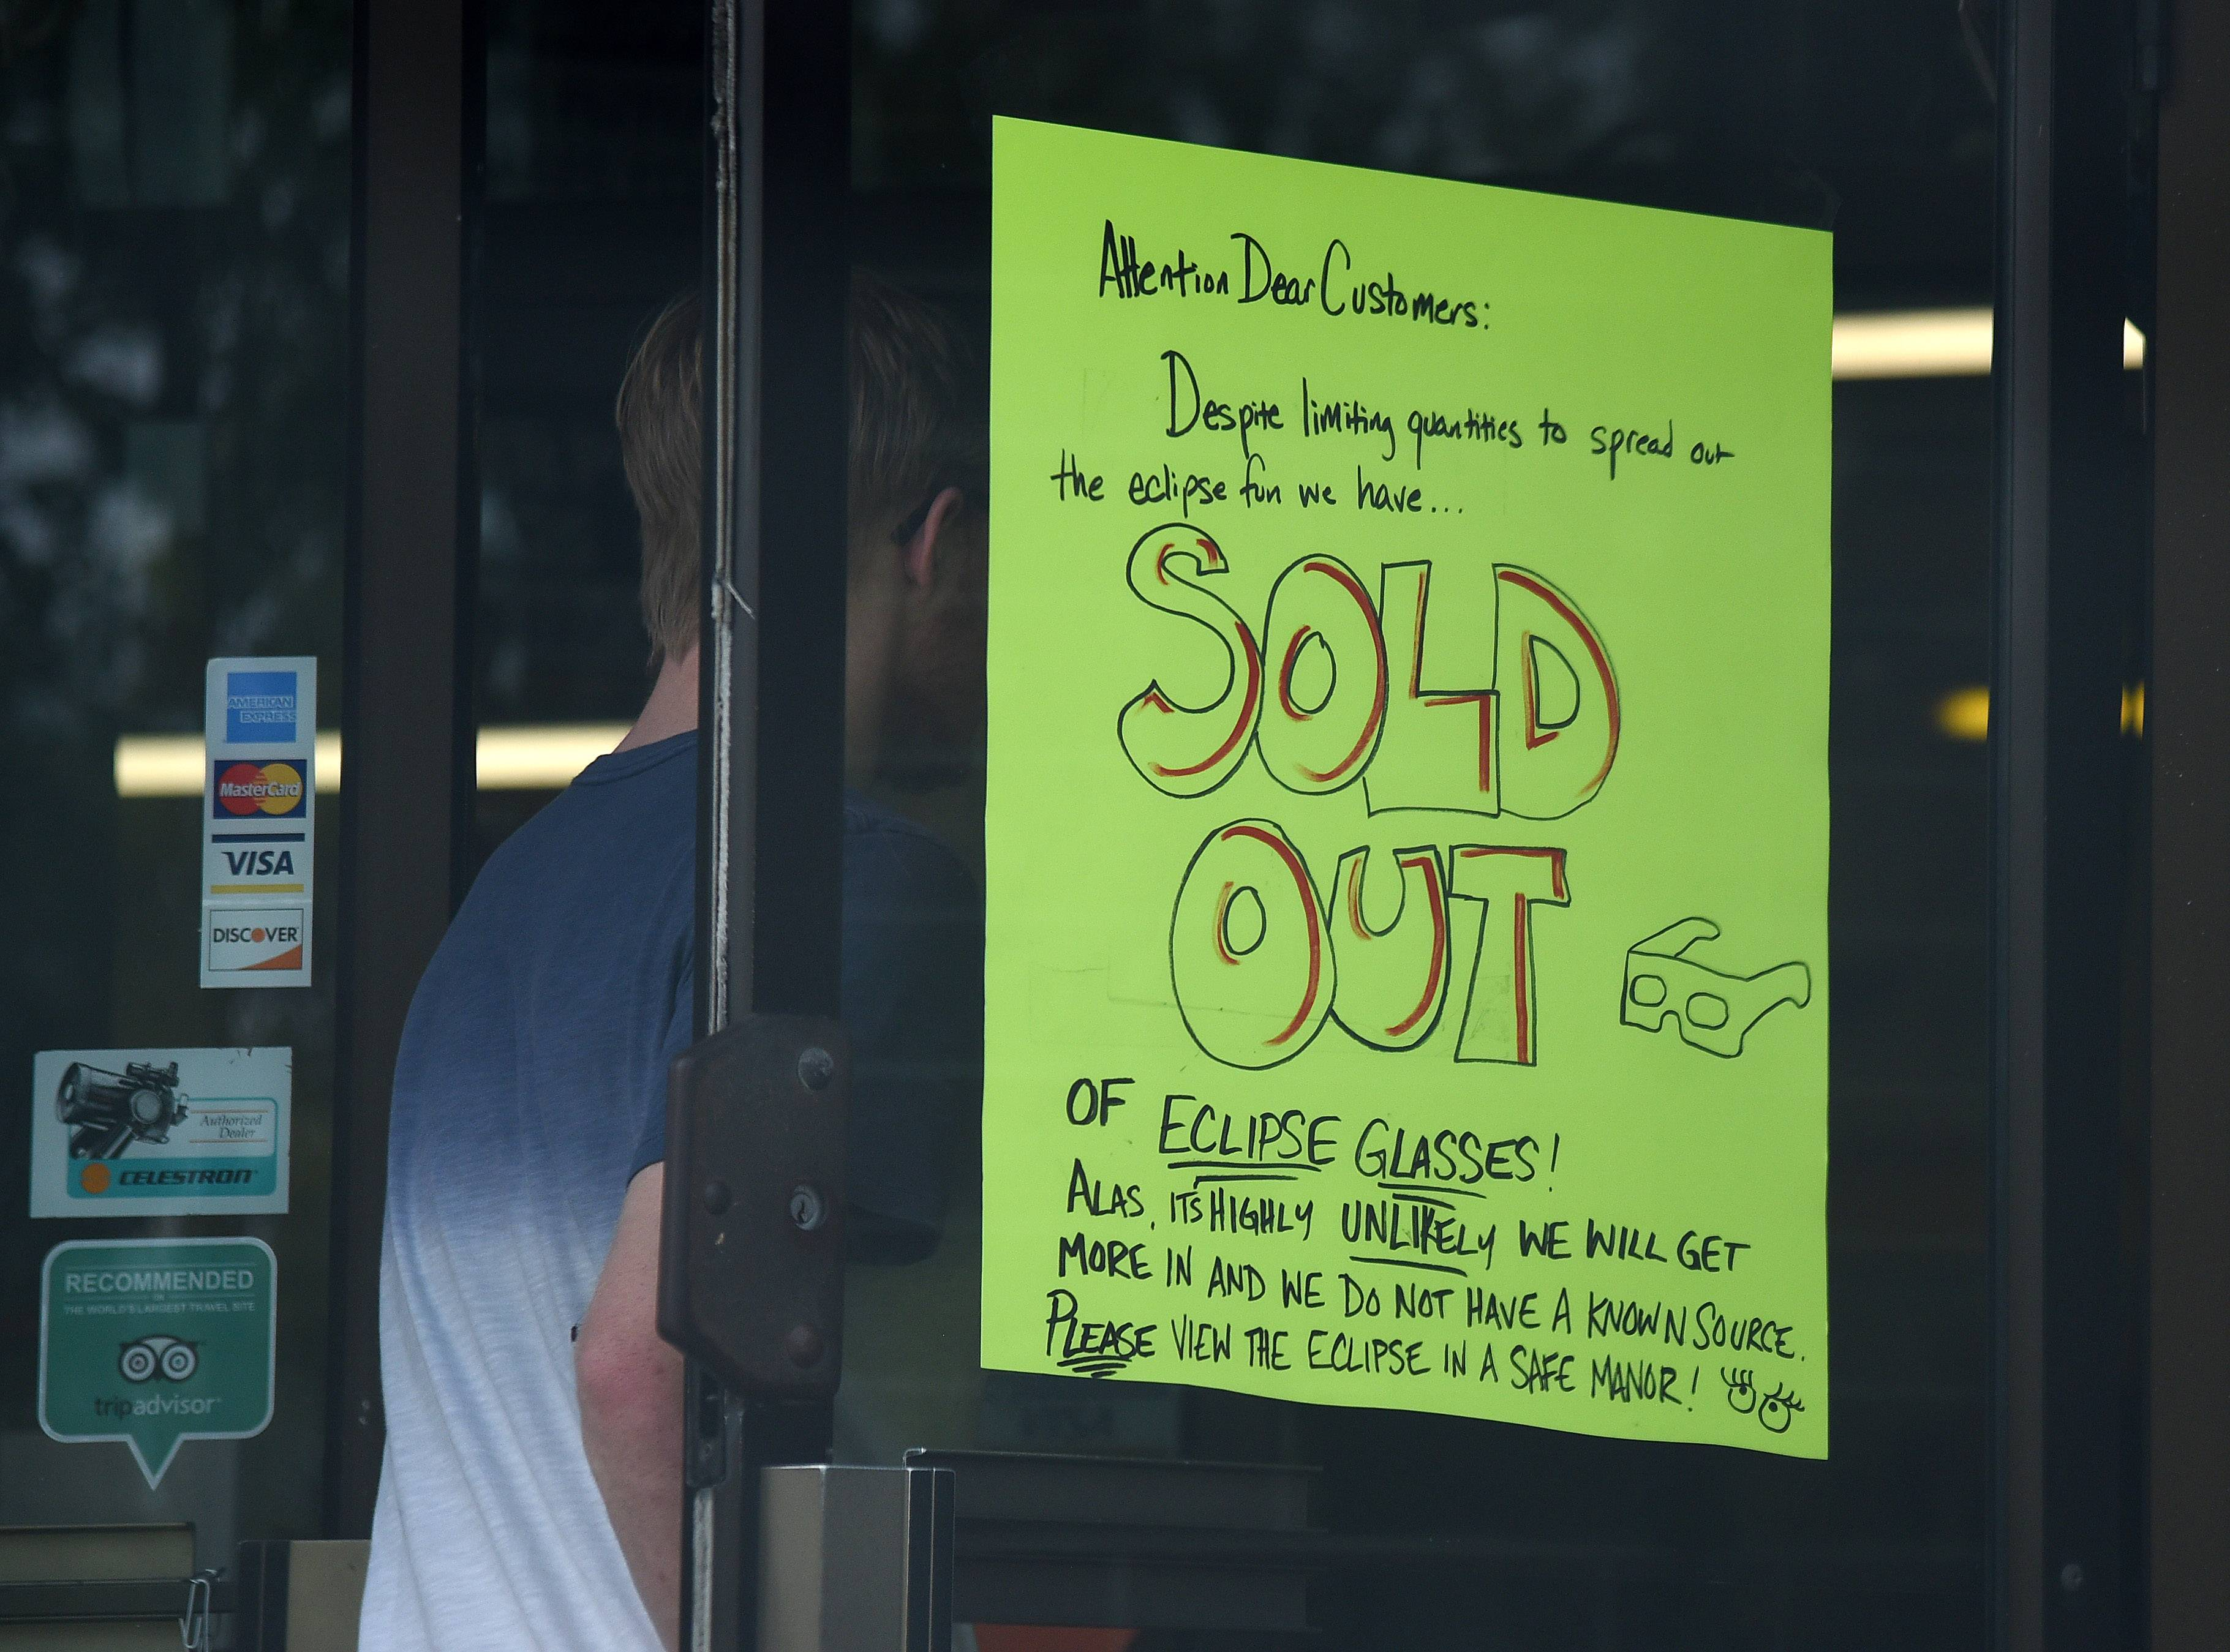 American Science & Surplus in West Chicago is sold out of eclipse glasses, as are many retailers in the area.